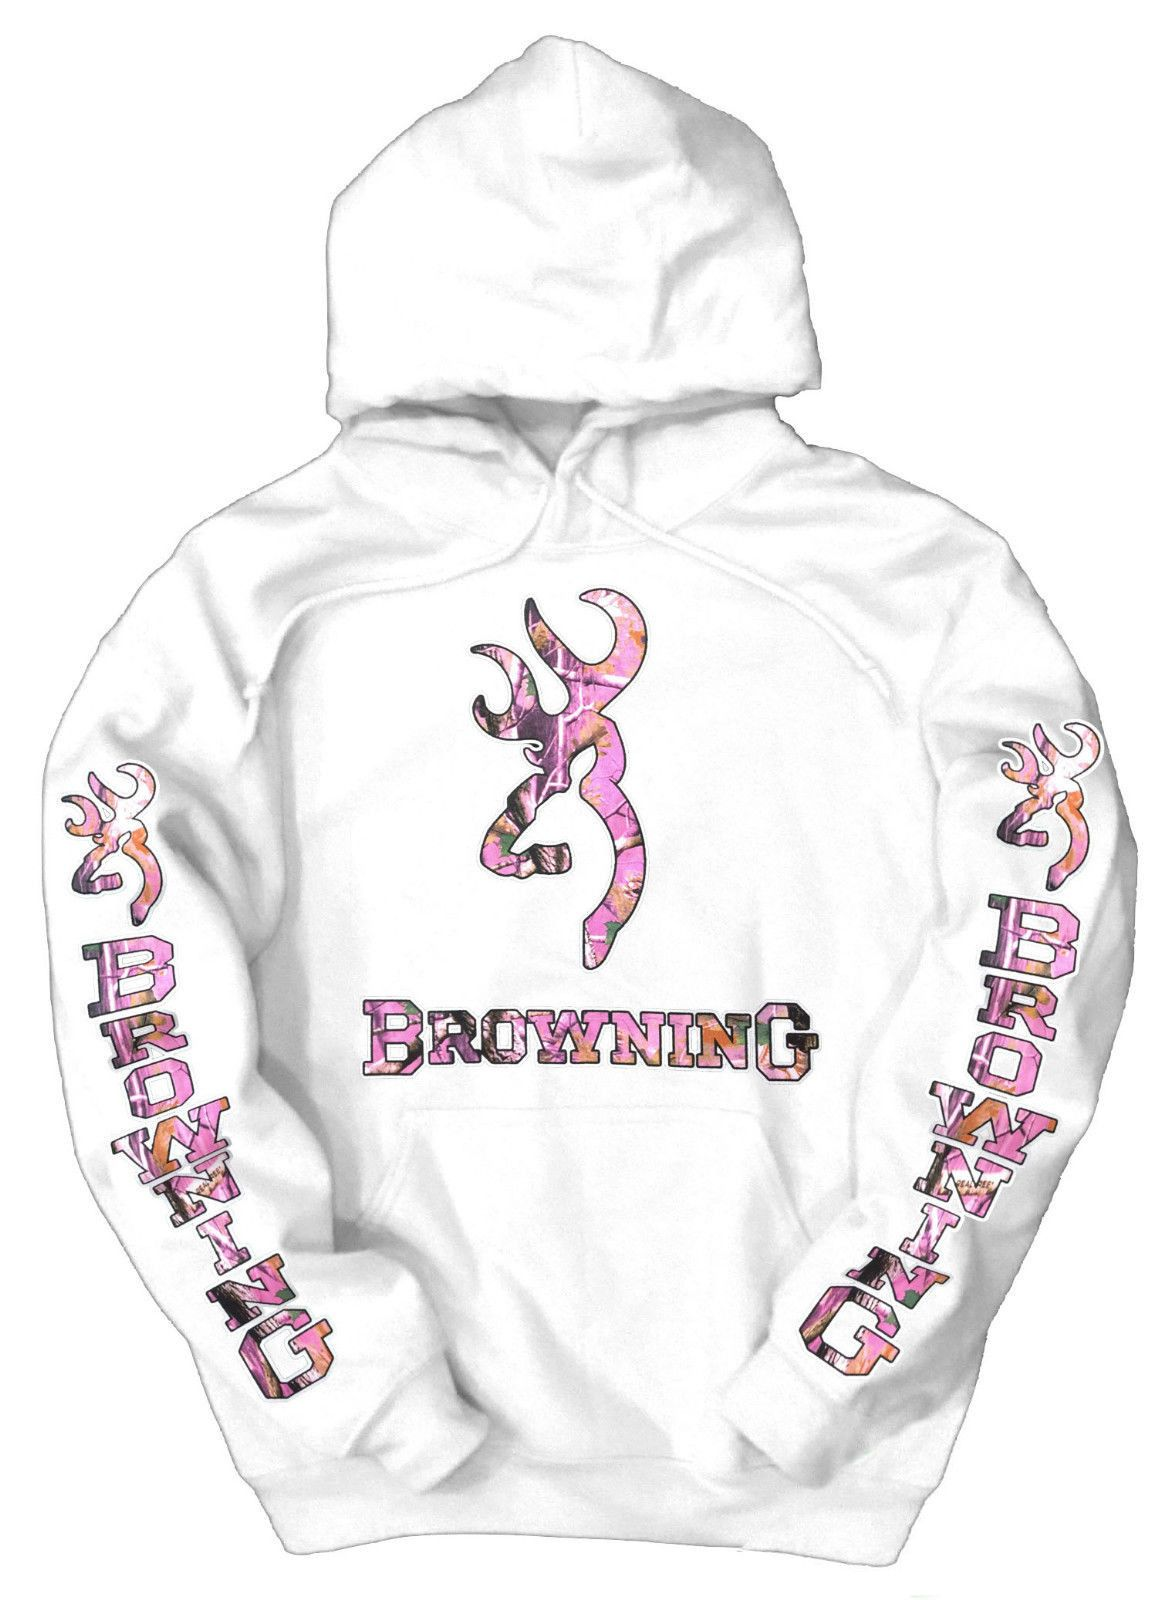 eb33fd9bd86e White Pink Camo Browning Hoodie